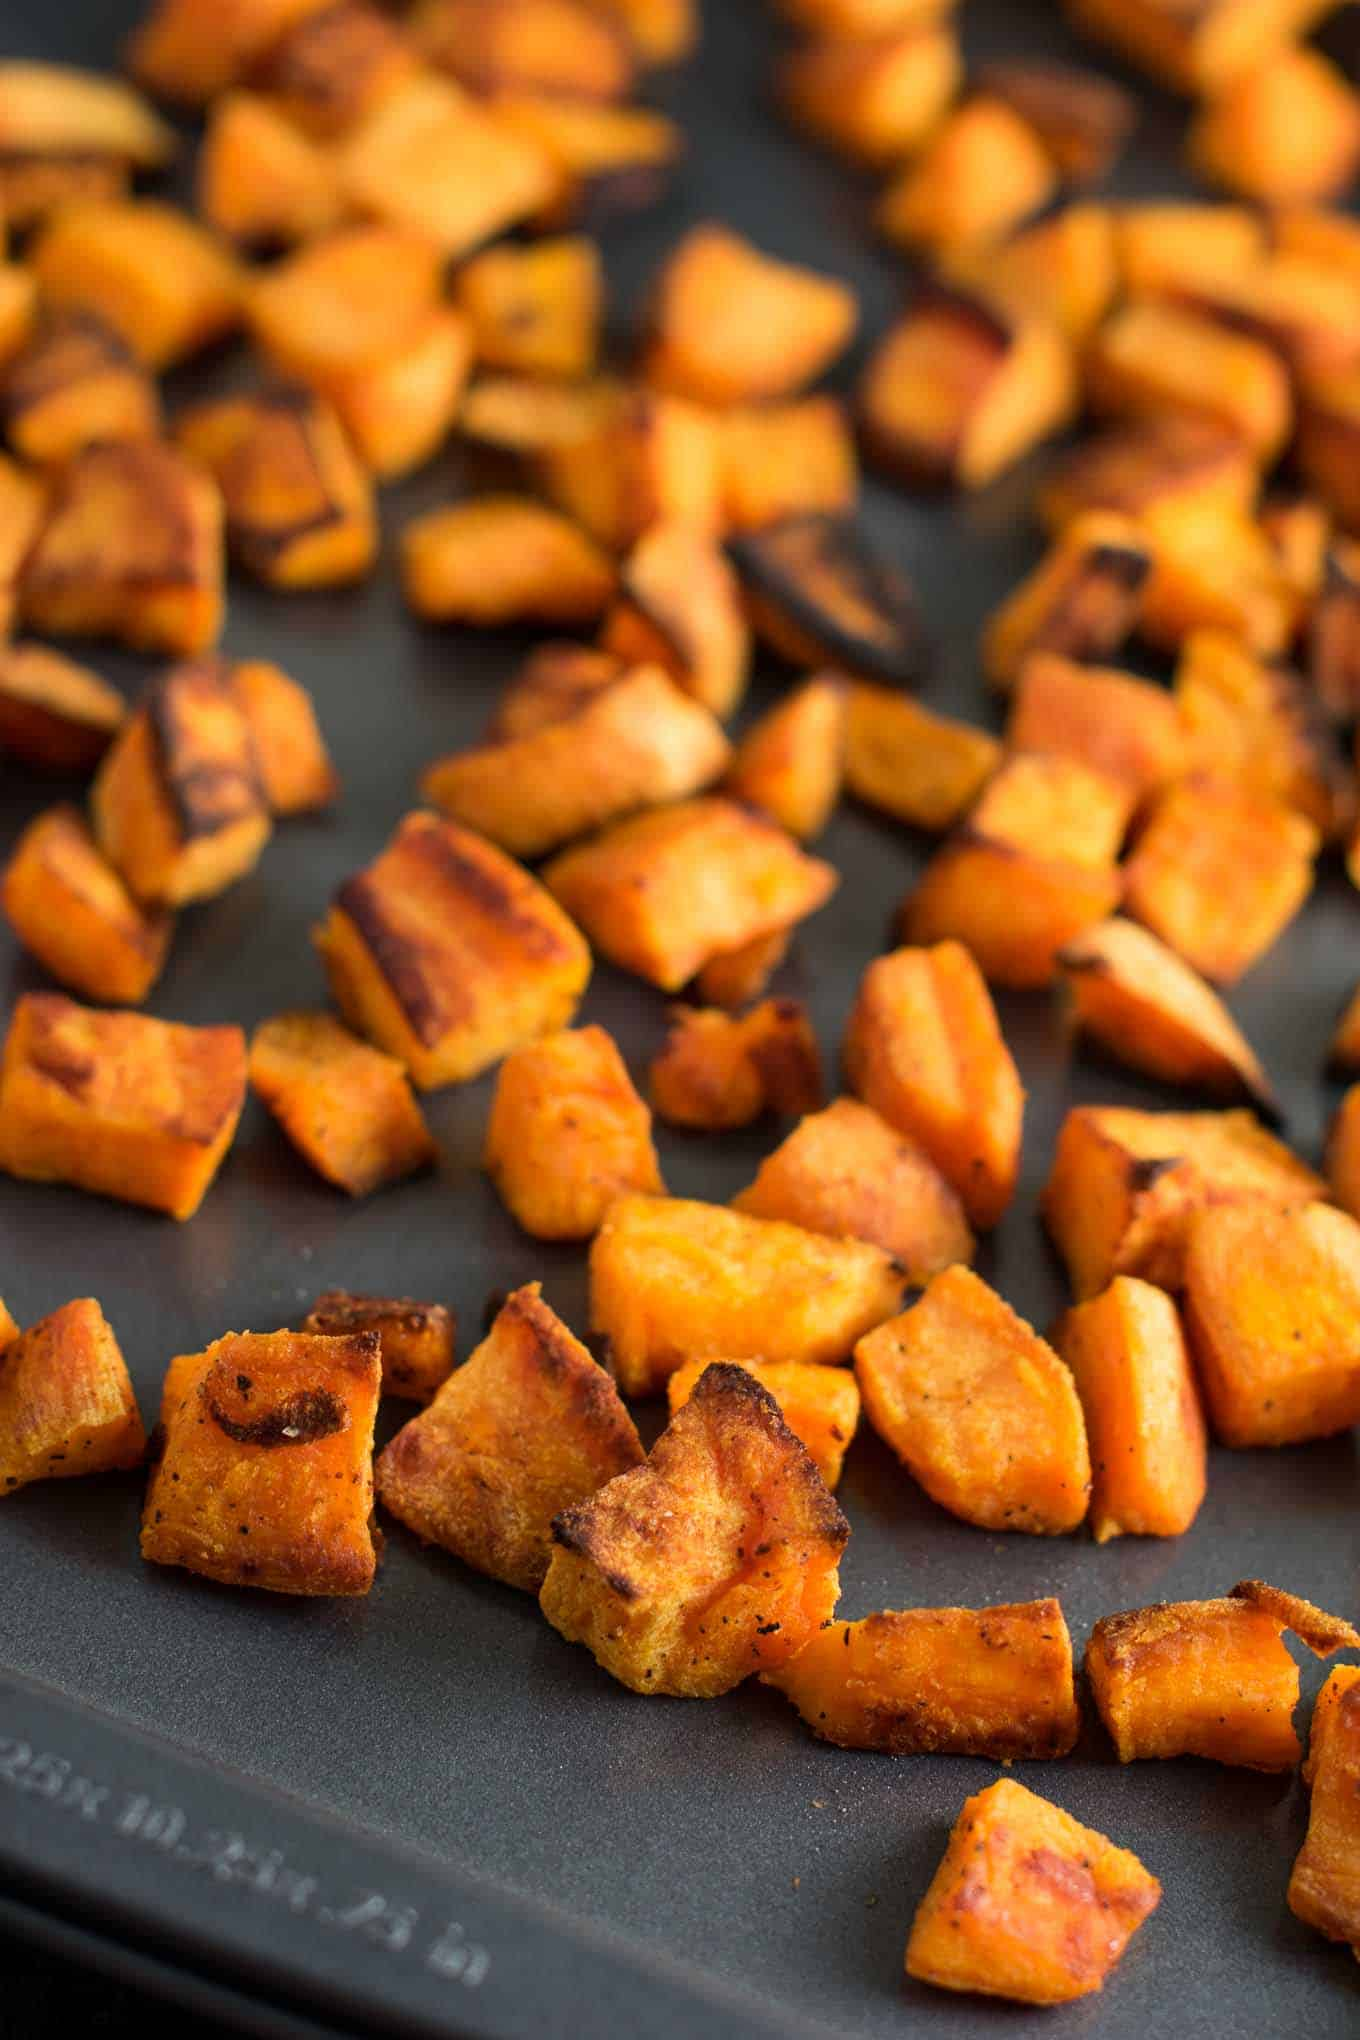 These baked sweet potato cubes are made with just 5 ingredients and ready in less than 30 minutes. Versatile enough to eat for any meal of the day!